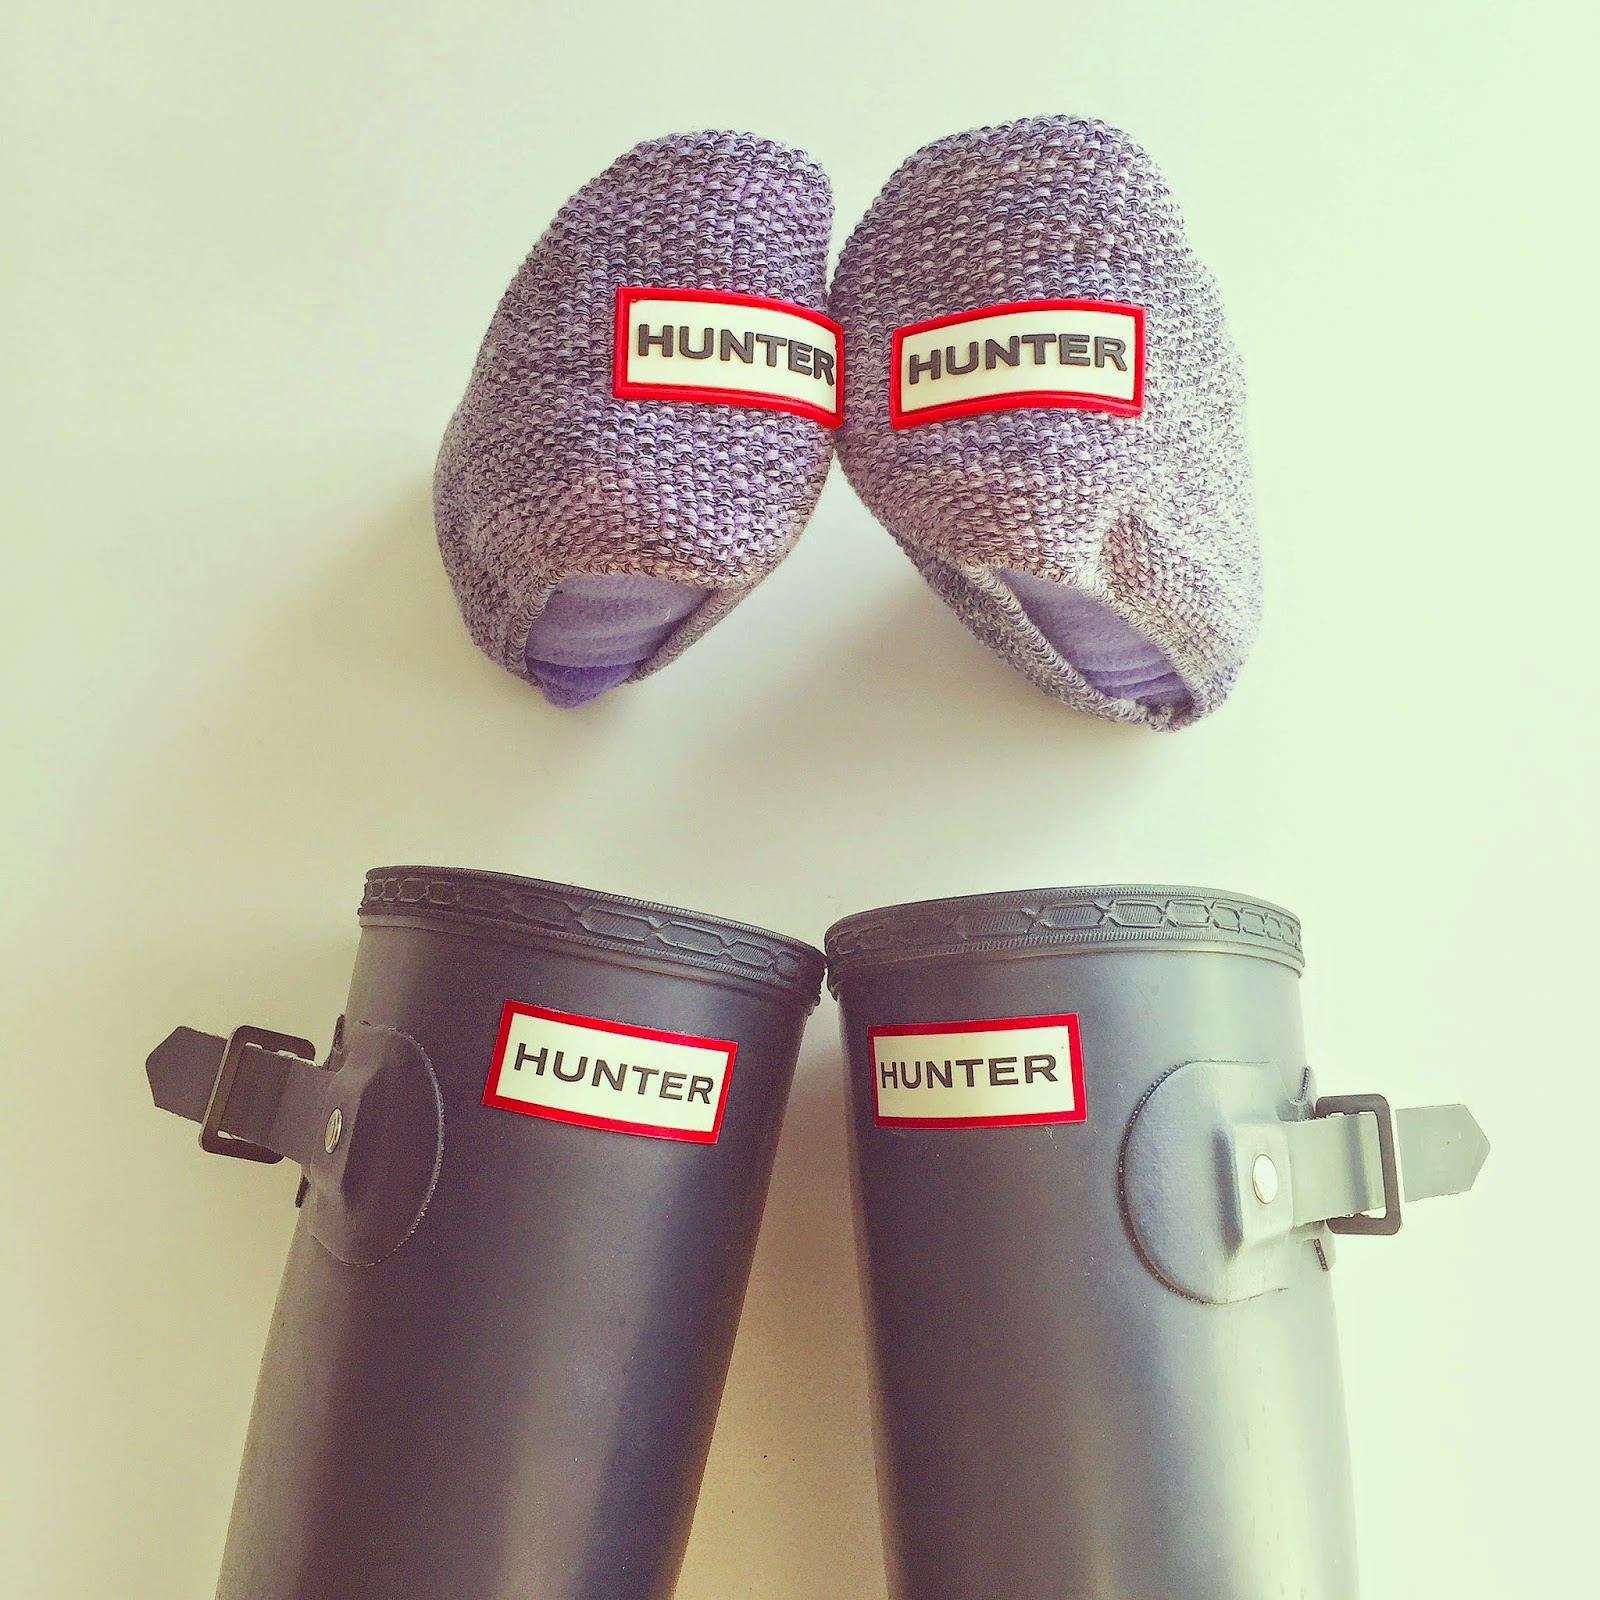 Hunter boots, hunter original tall boots, hunter original tall boots socks, hunter socks, fashion blog